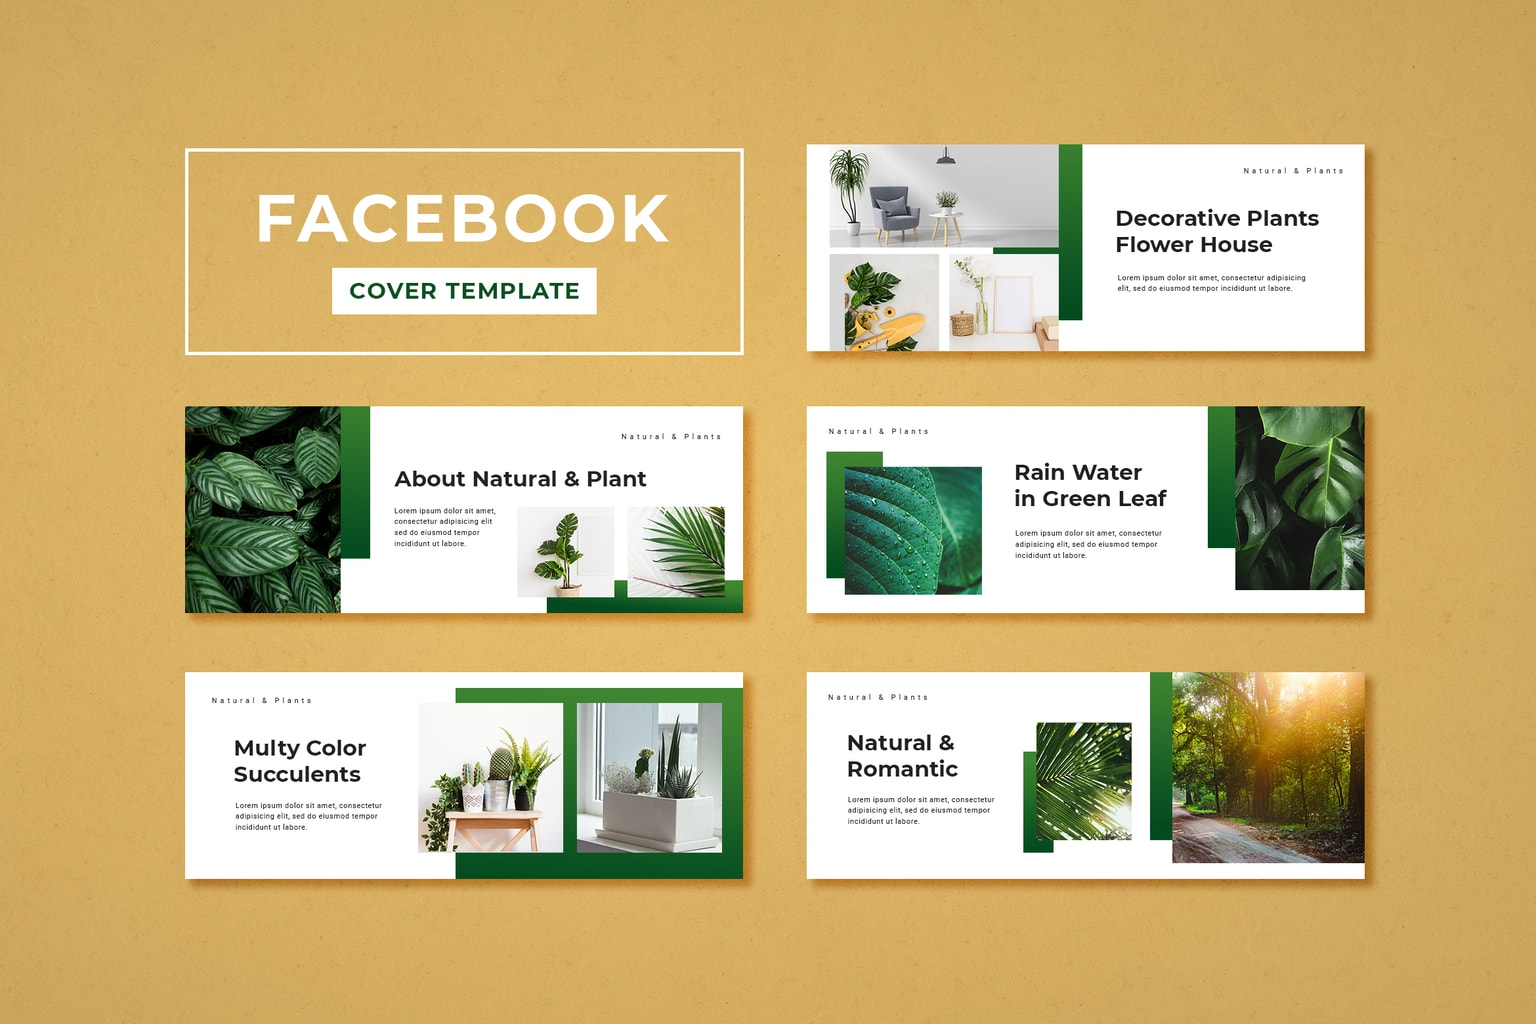 facebook cover decorative flower house